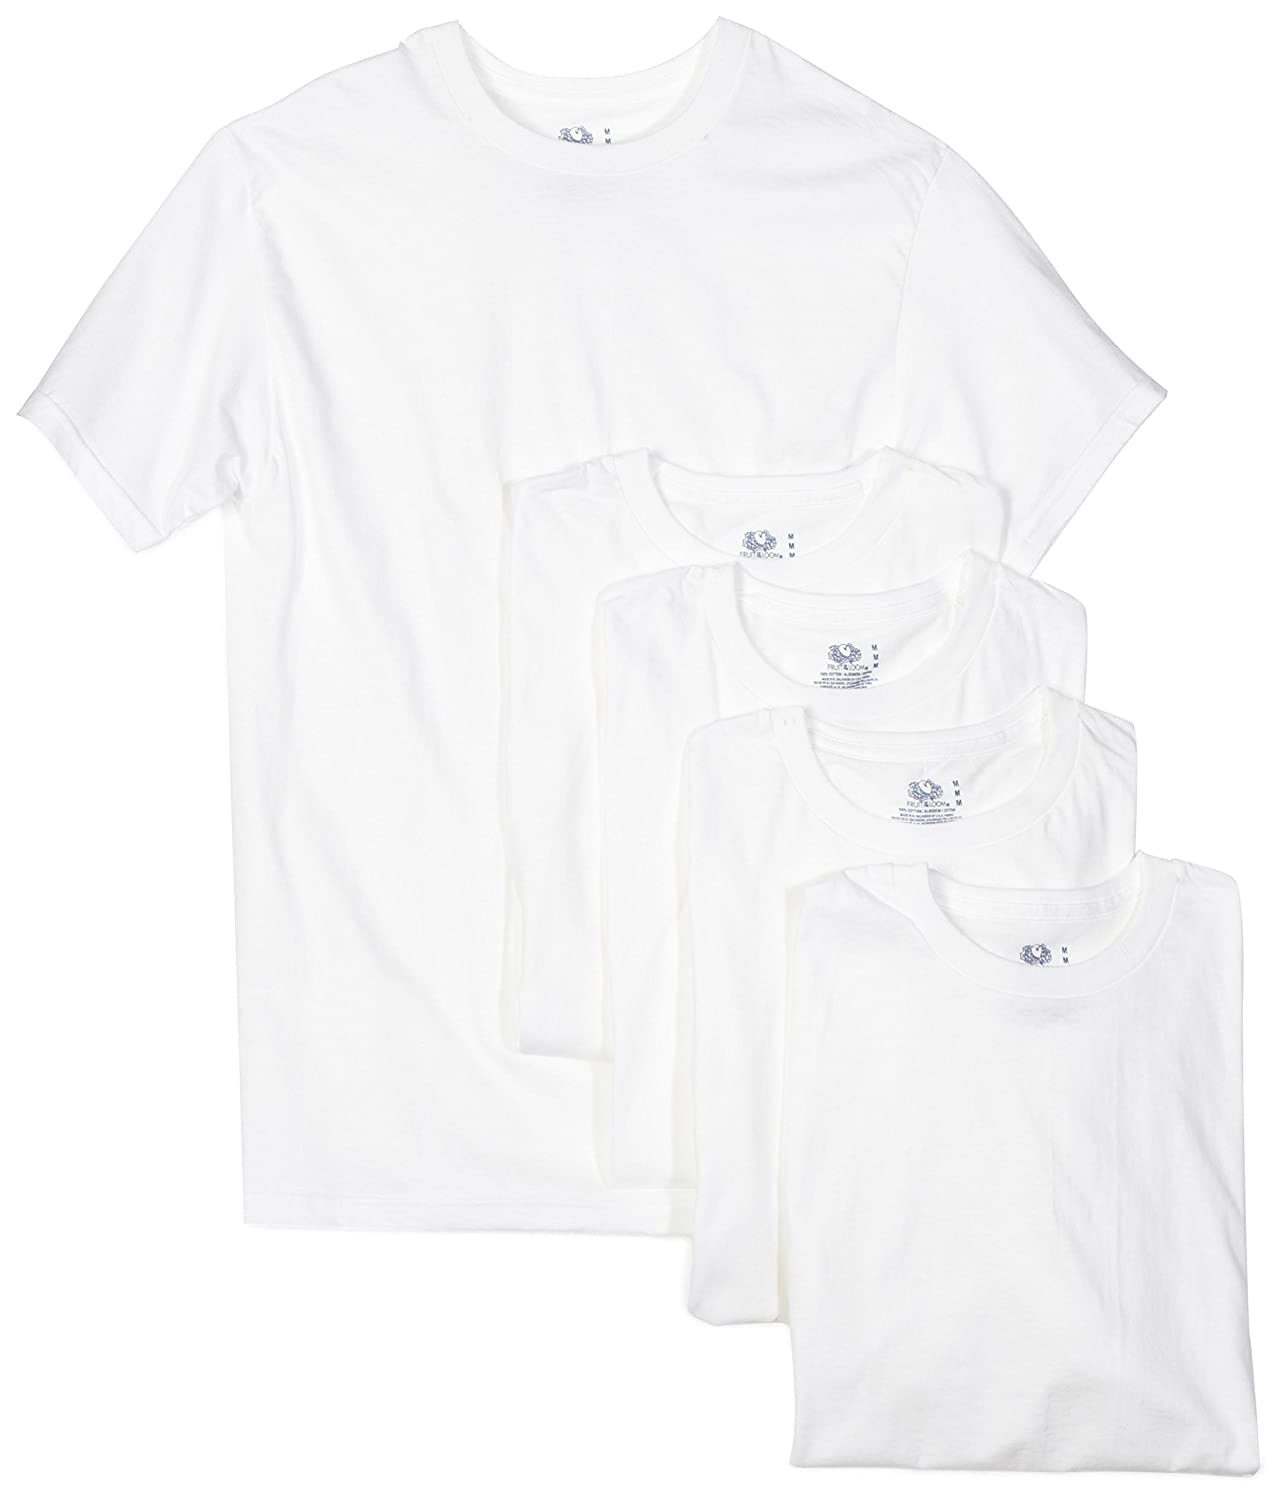 adb54c93f4c2 Amazon.com  Fruit of the Loom Men s Crew-Neck T-Shirt 5-Pack  Clothing